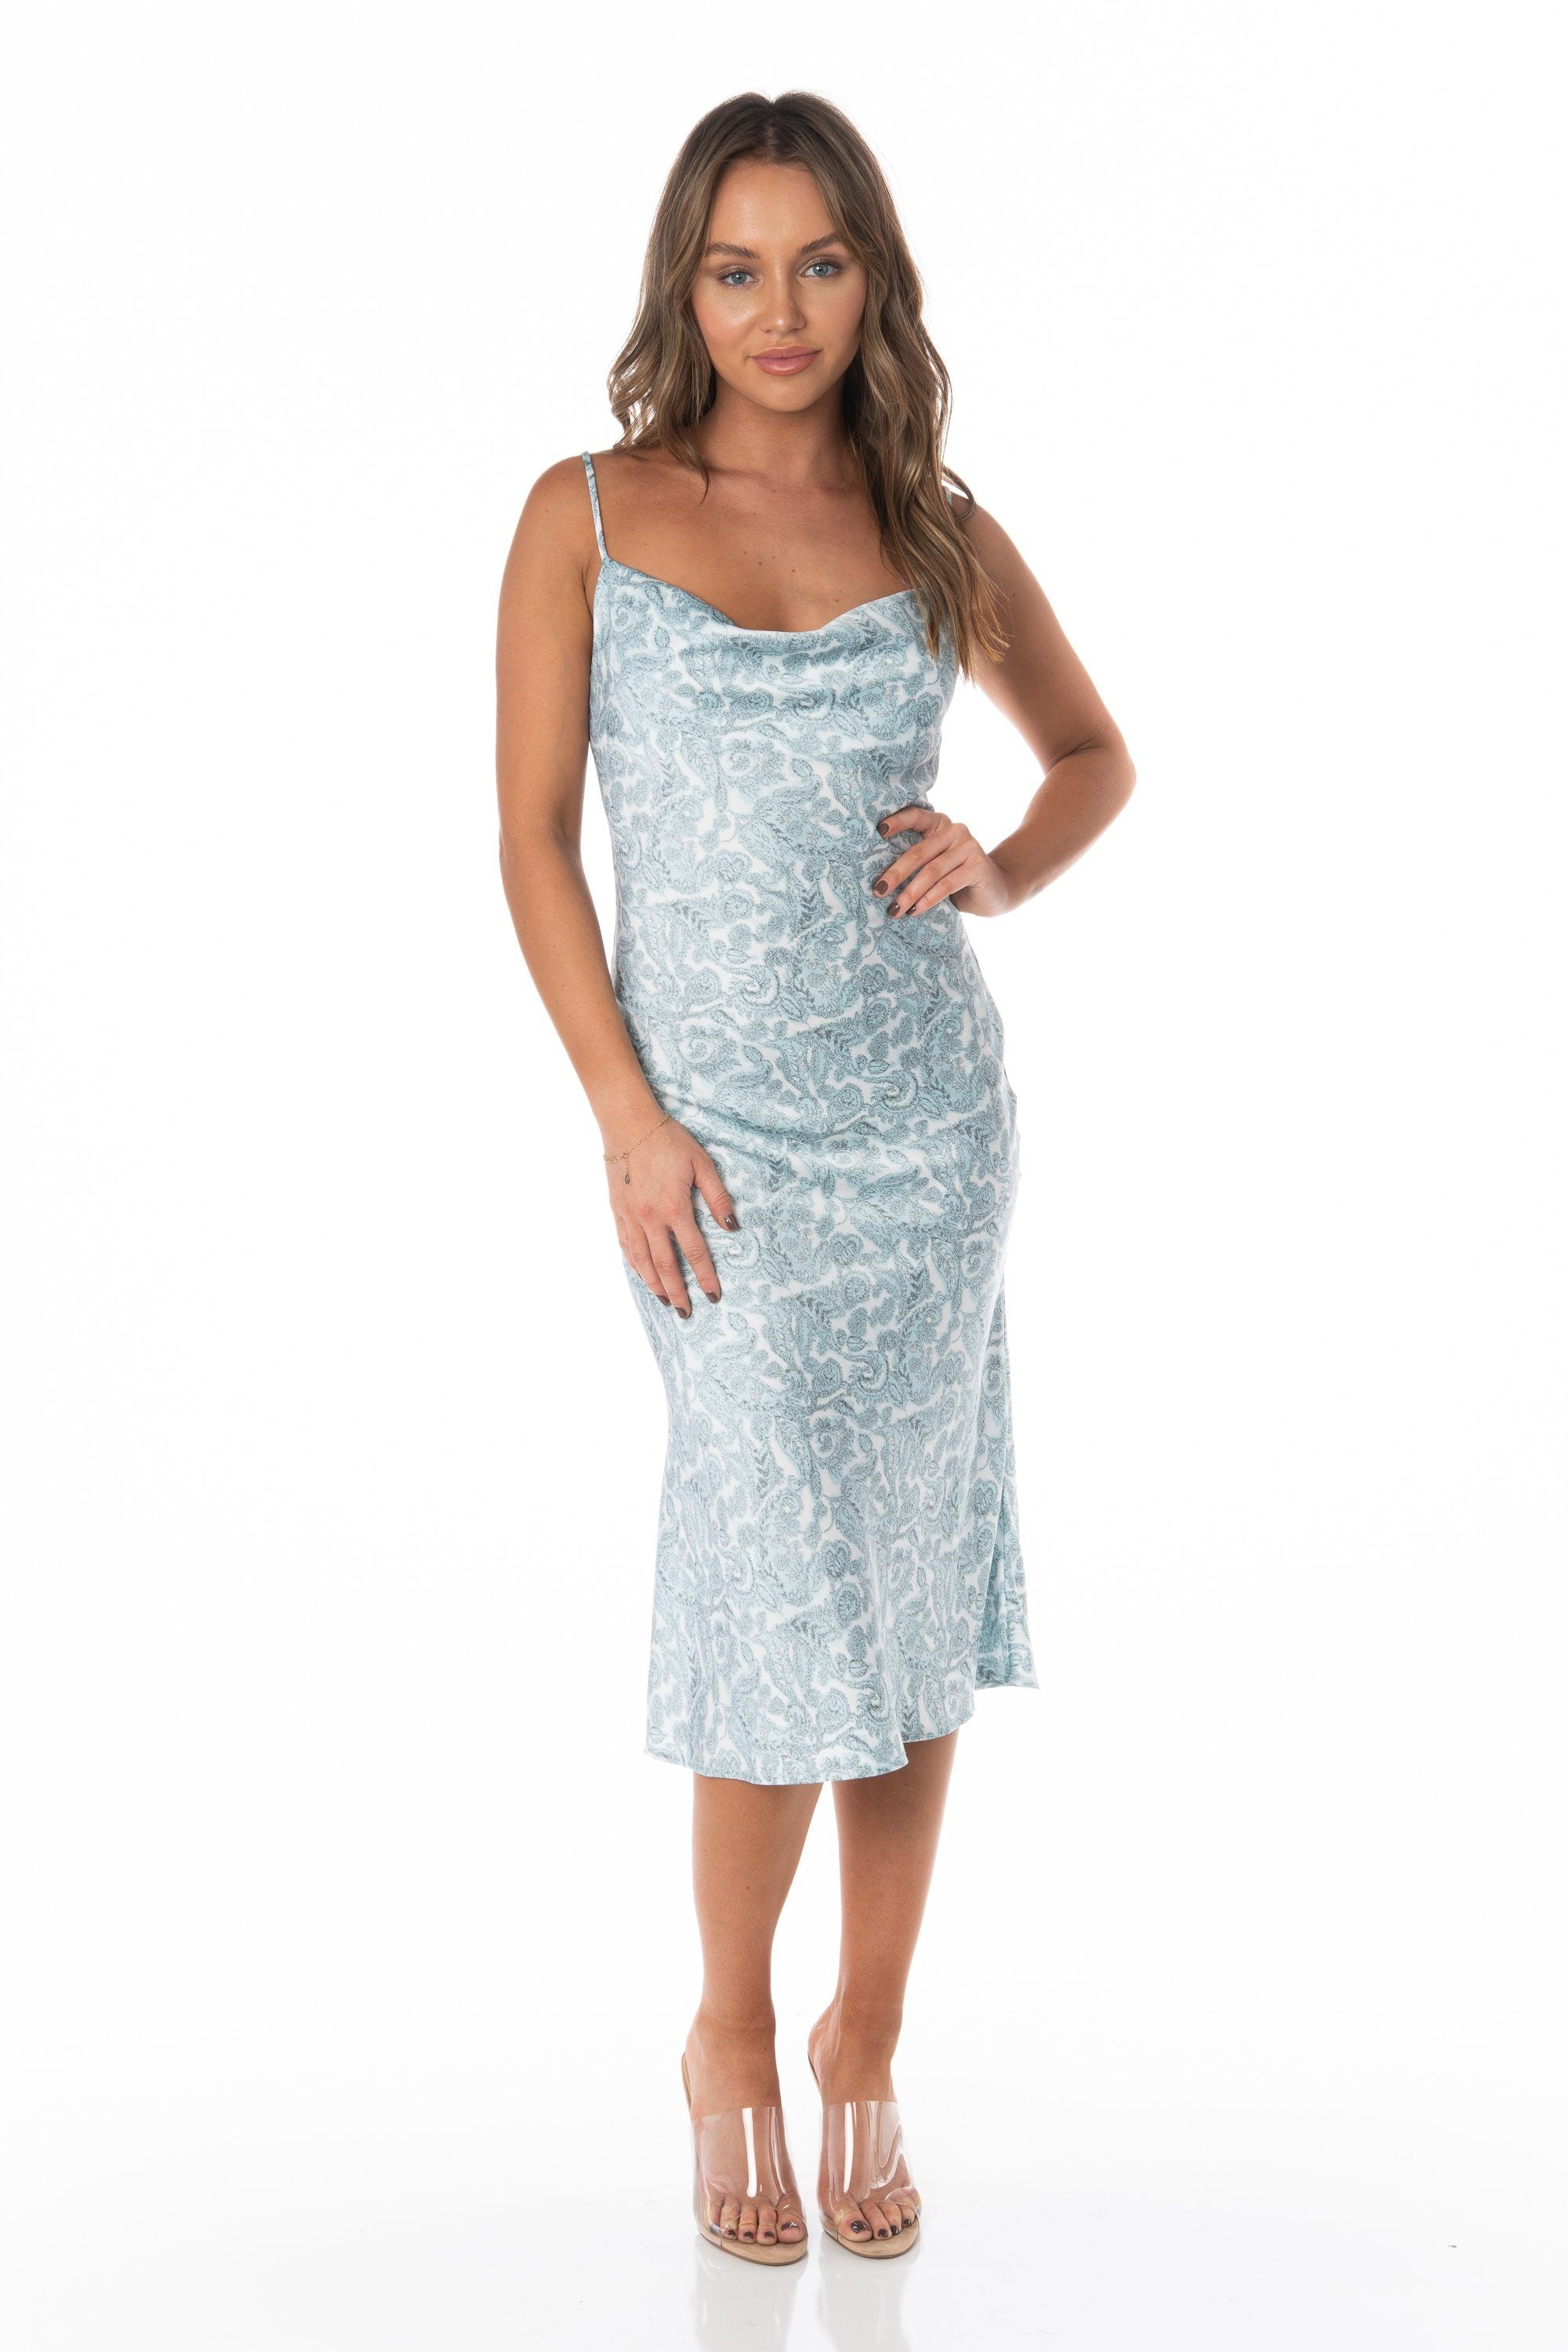 Aquamarine Paisley Midi Slip Dress - FINAL SALE Dresses HYPEACH BOUTIQUE